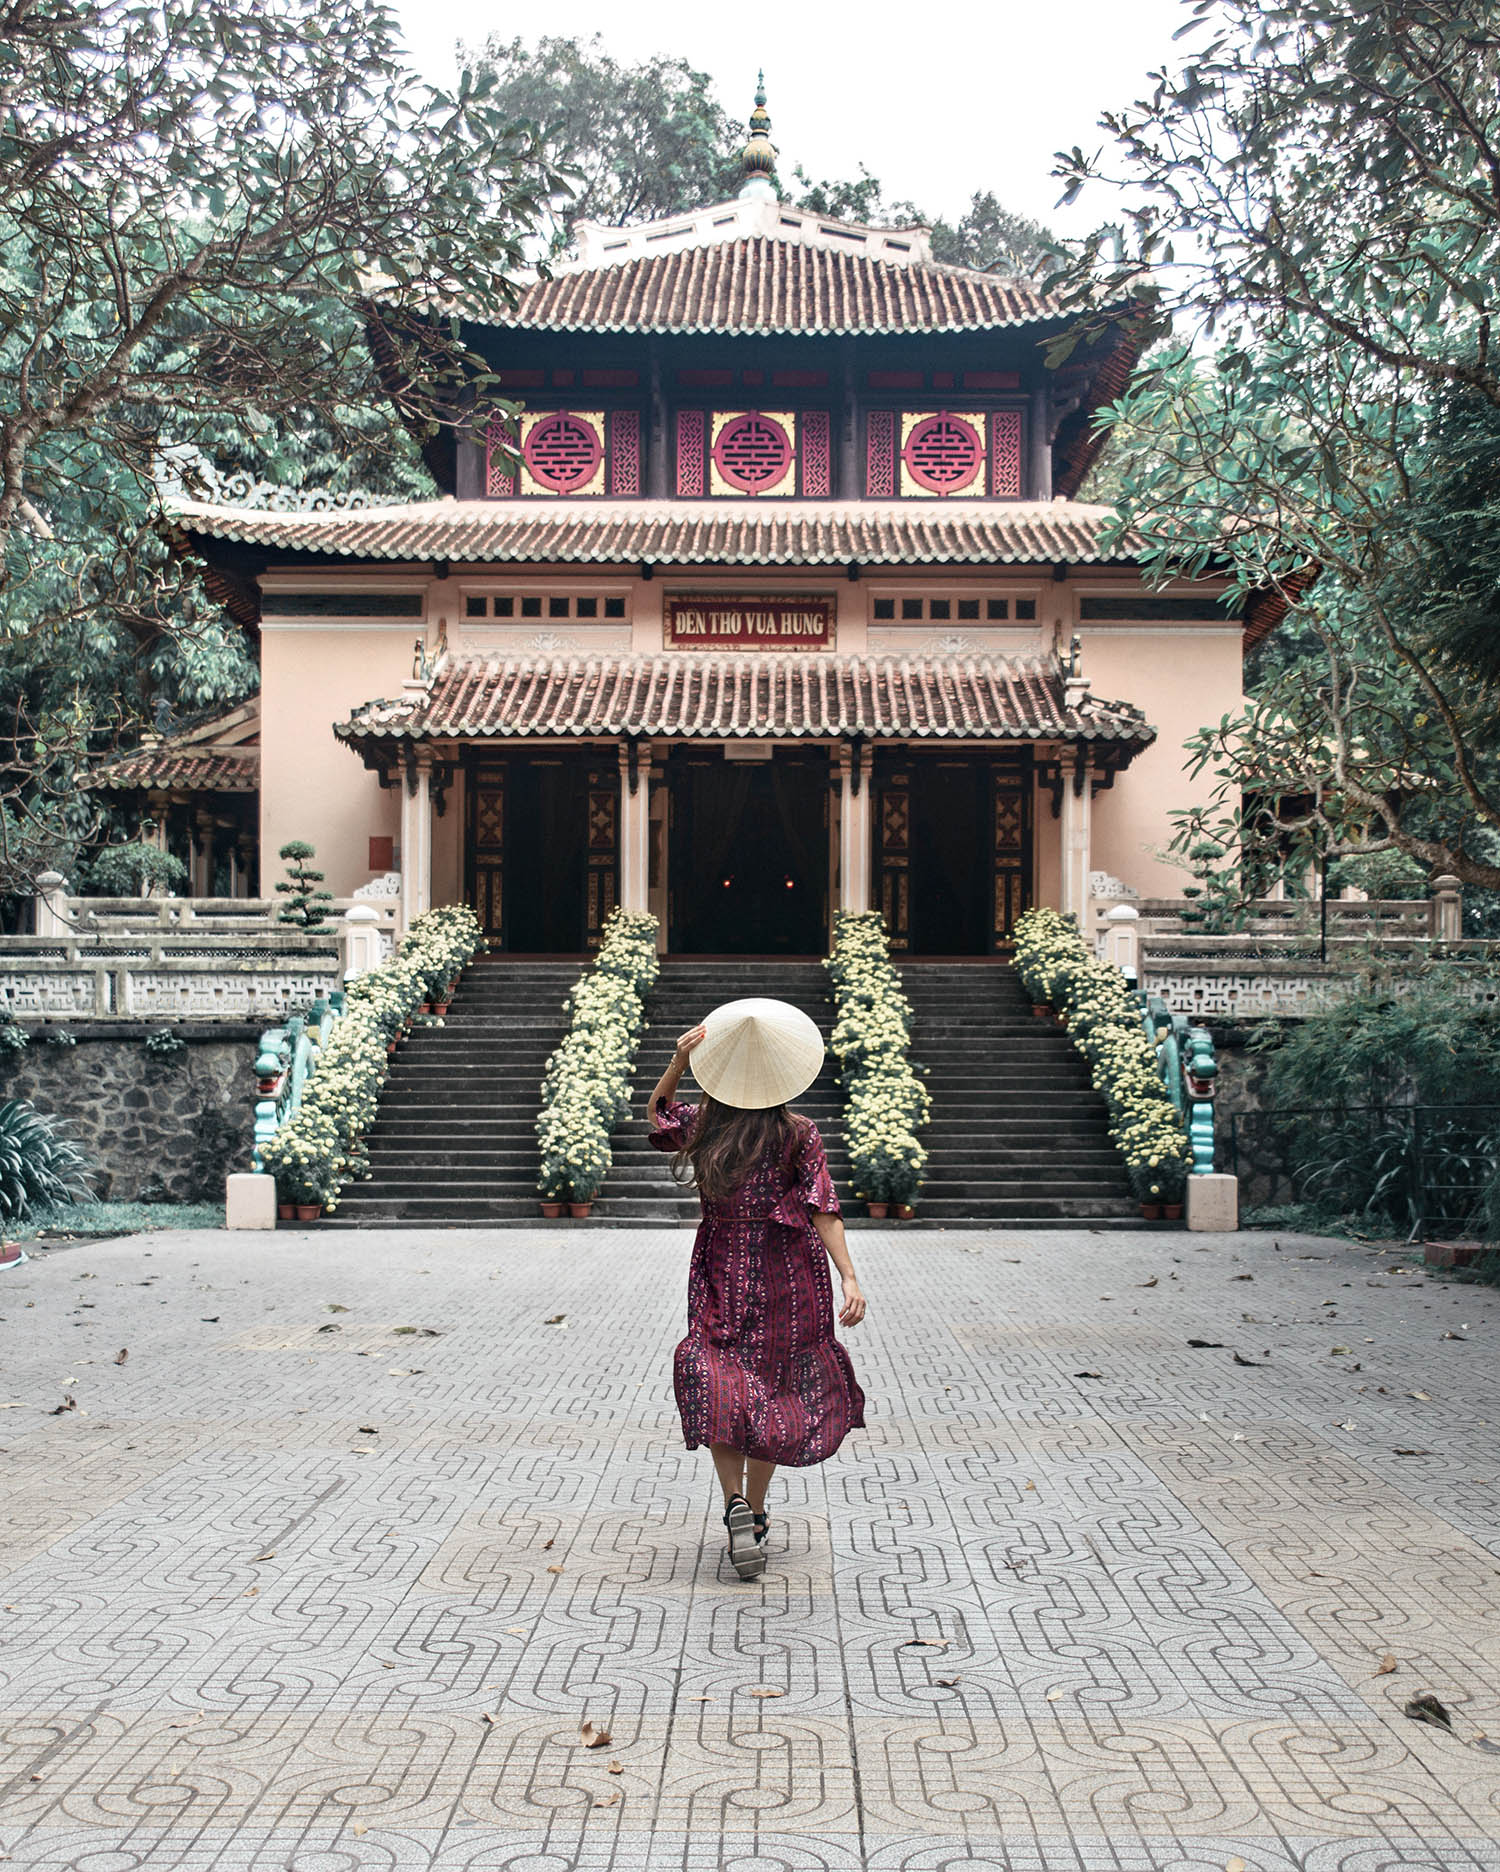 Girl with conical hat walking towards Đền Thờ Vua Hùng - Buddhist temple in Ho Chi Minh City, Vietnam